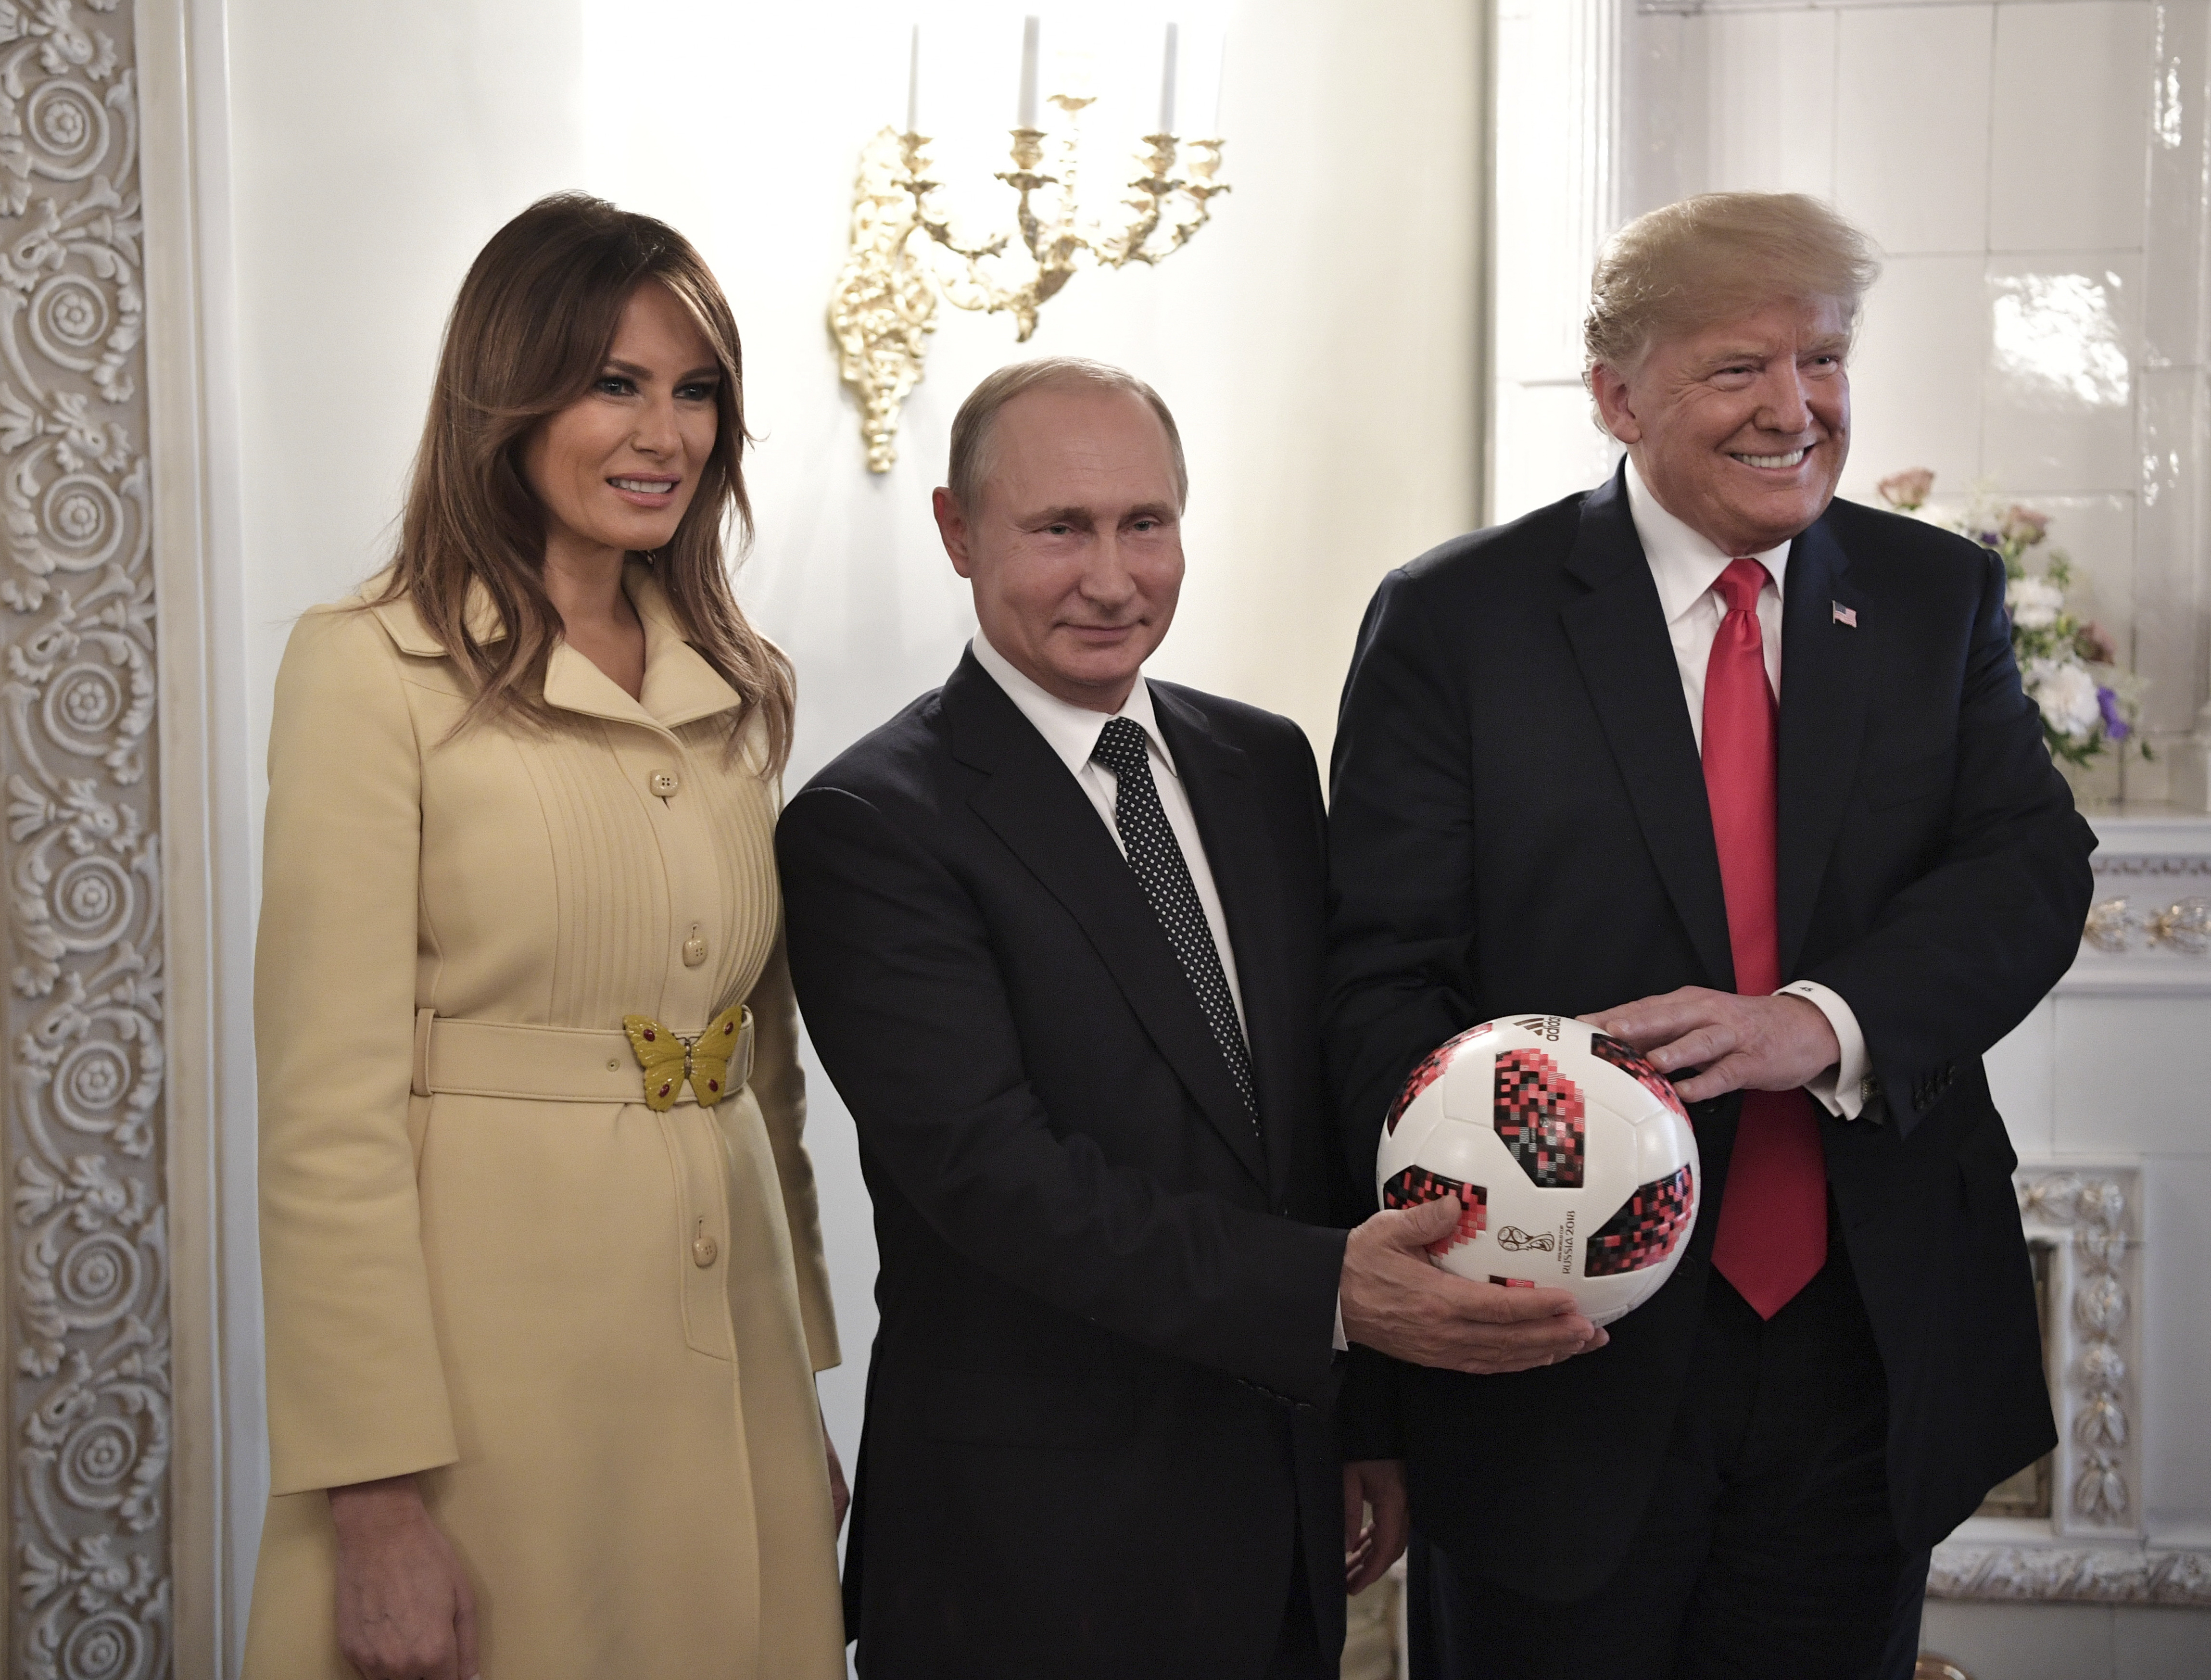 Russia's President Vladimir Putin (C), U.S. President Donald Trump (R) and First lady Melania Trump pose for a picture with a football during a meeting in Helsinki, Finland July 16, 2018. Sputnik/Alexei Nikolsky/Kremlin via REUTERS  ATTENTION EDITORS - THIS IMAGE WAS PROVIDED BY A THIRD PARTY. - UP1EE7G1DCYGQ